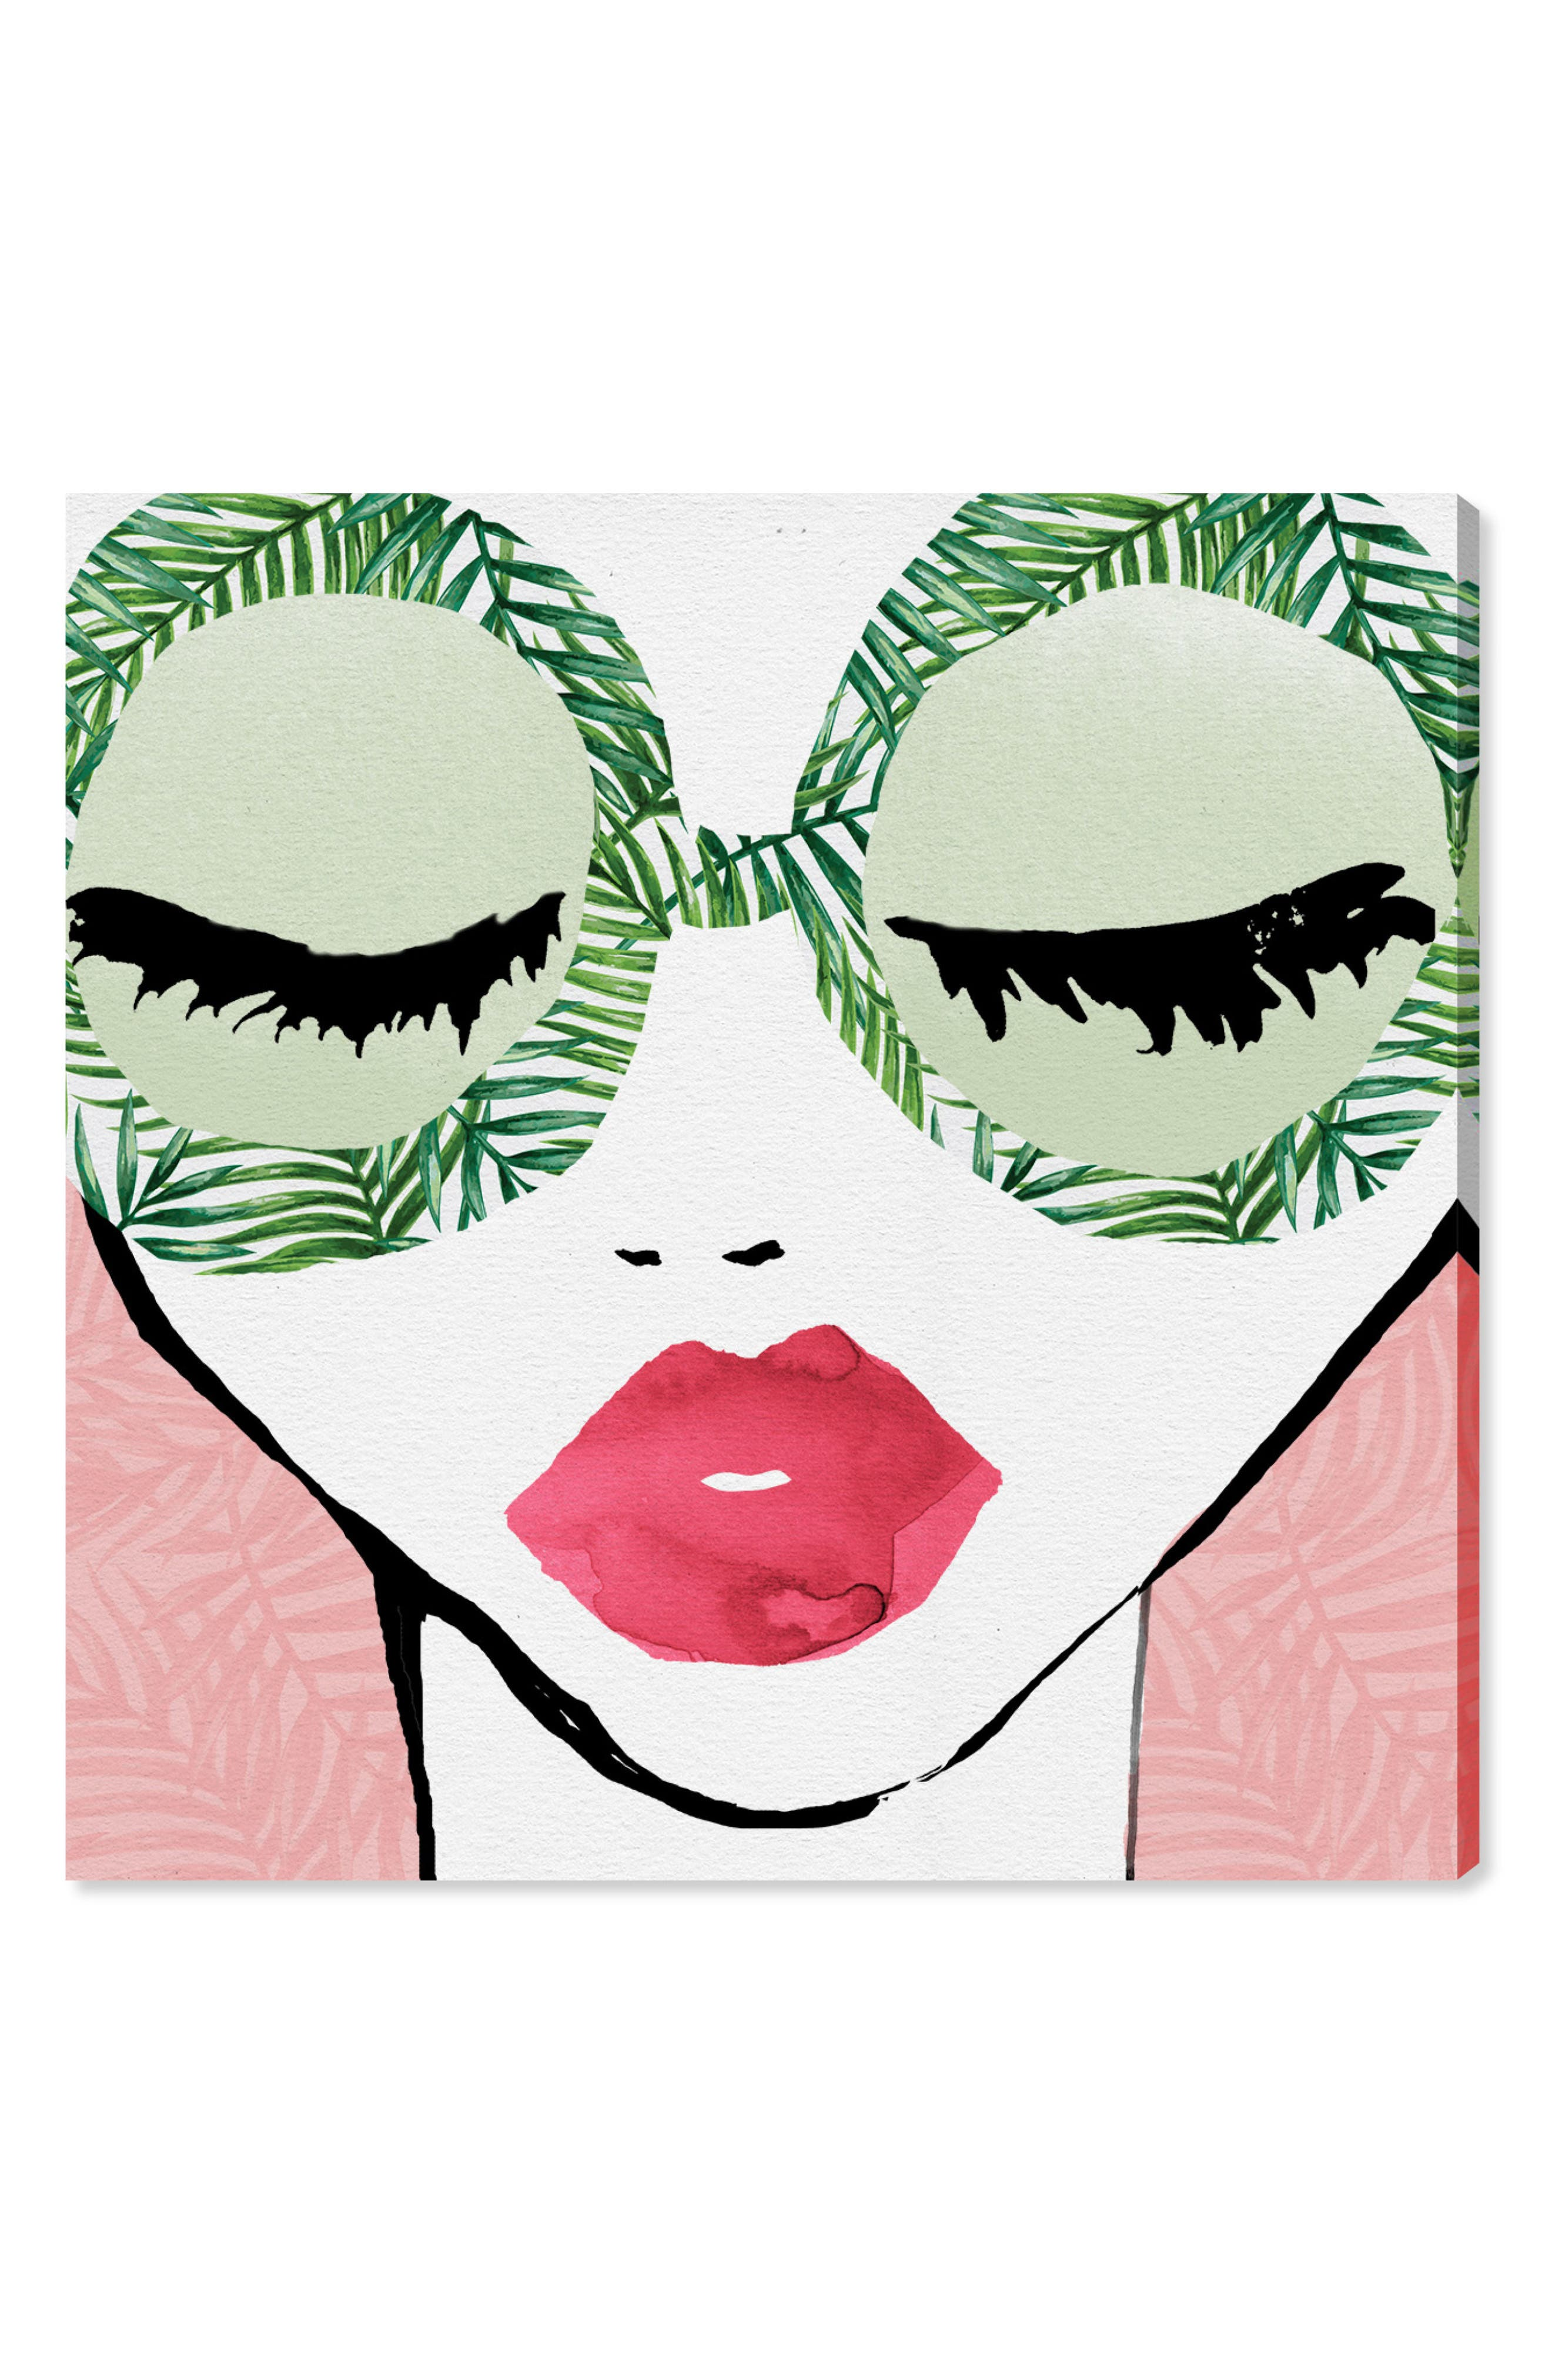 Plant Lady Glasses Canvas Wall Art,                             Main thumbnail 1, color,                             Green